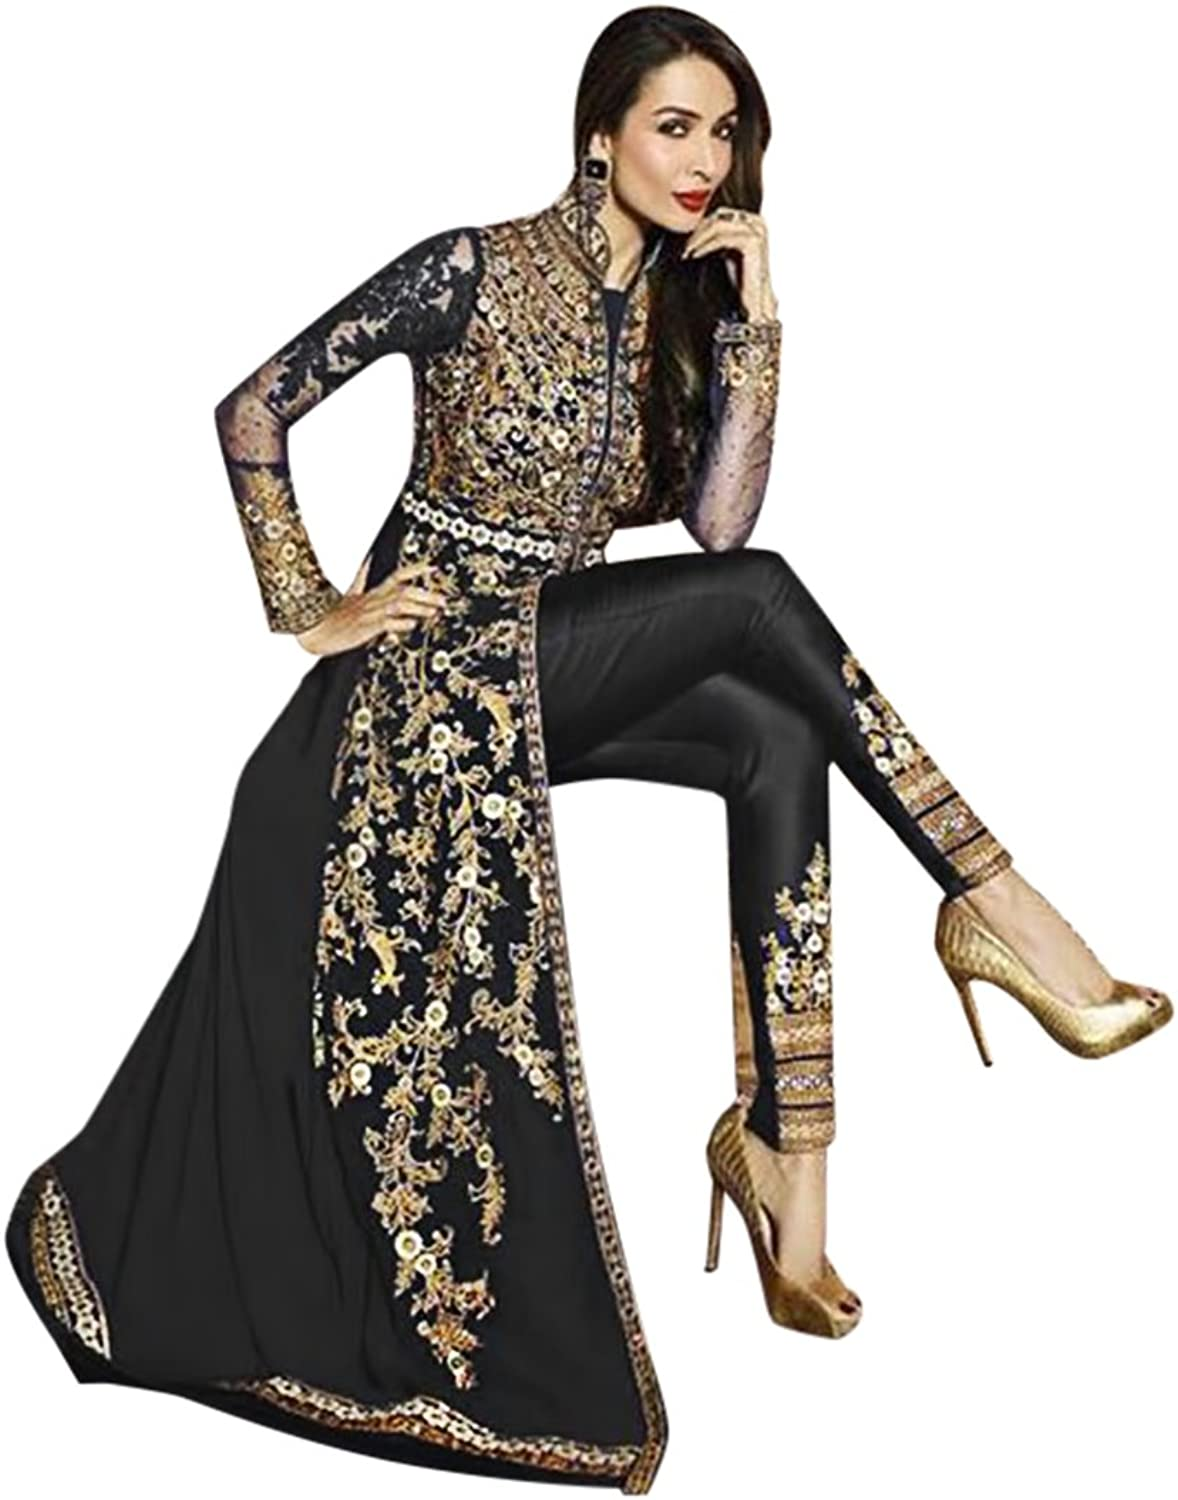 ETHNIC EMPORIUM Malaika Bollywood Party Long Pakistani Kaftan Style Salwar Kameez Muslim Eid Women